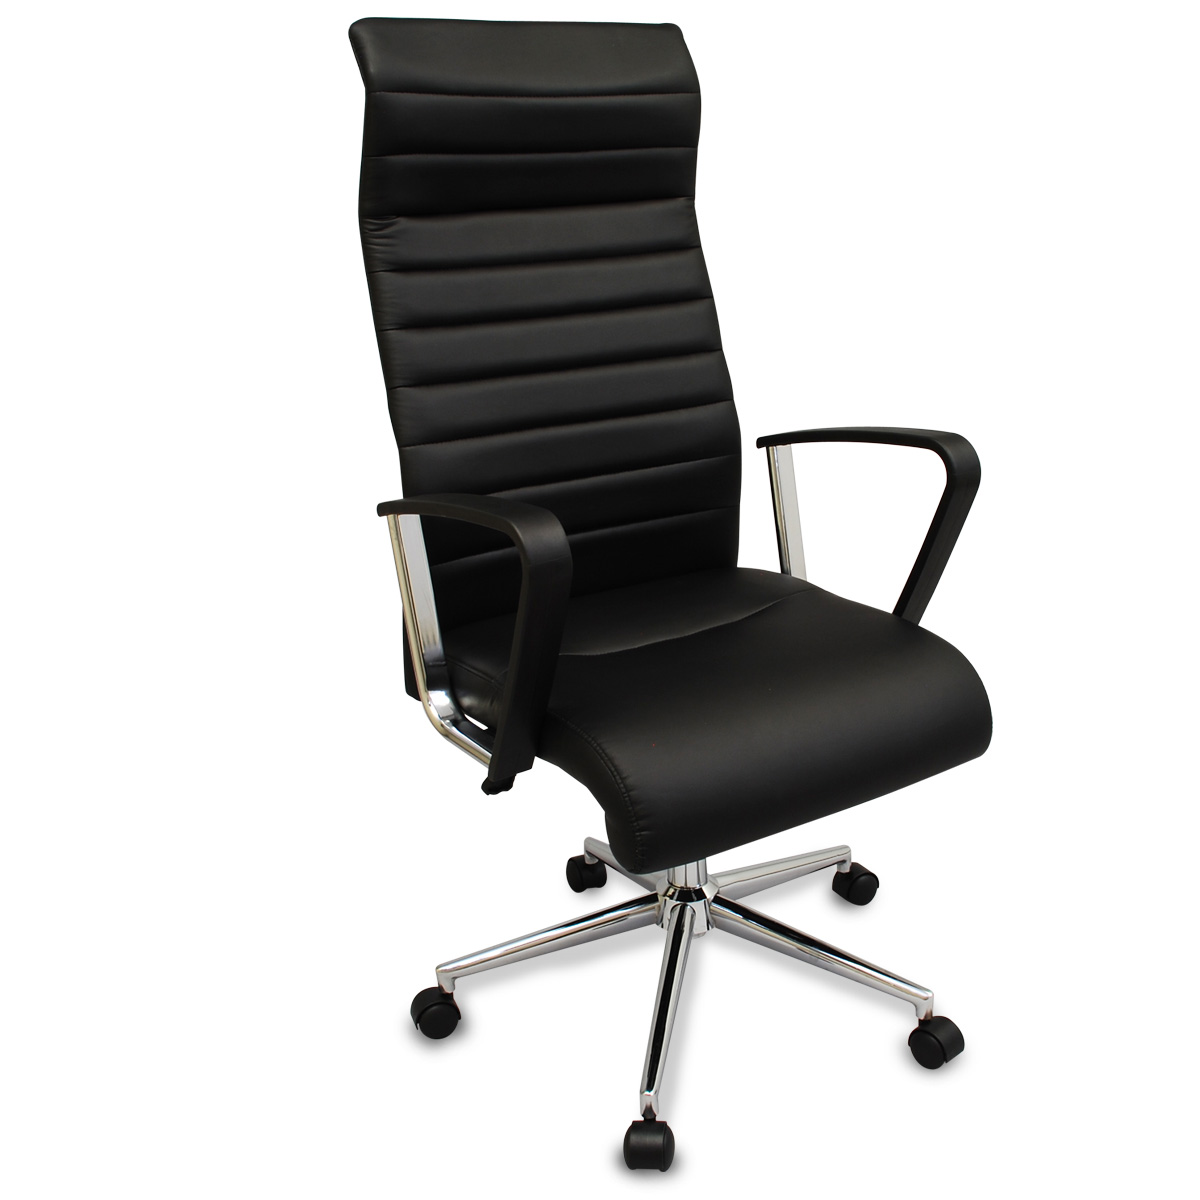 ergonomic chair neck support kneeling chairs new black executive office modern design